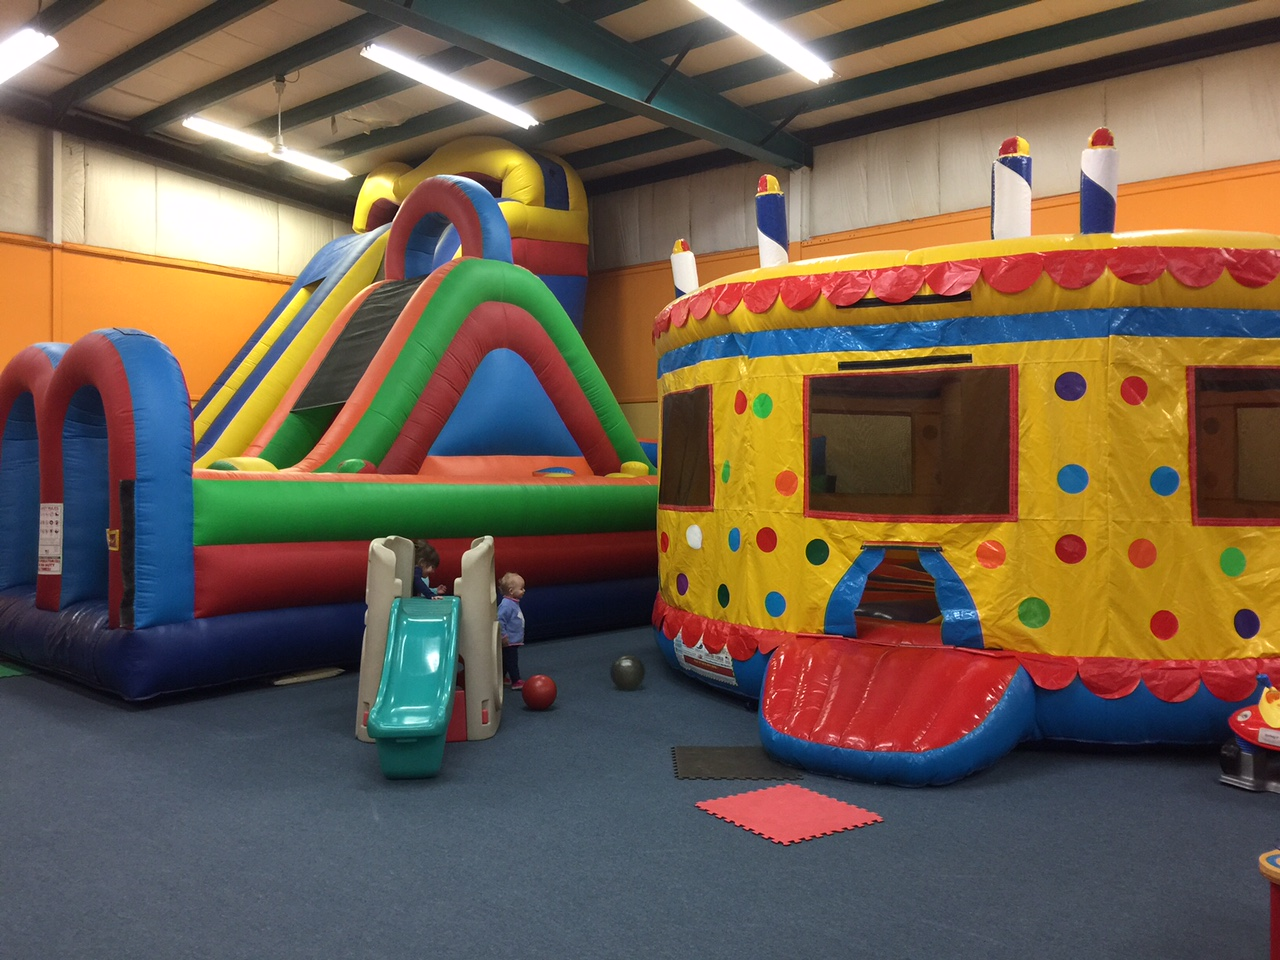 Just big enough for the little ones, Leaps N' Bounce leaves kids jumping for joy Mary Friona-Celani/Special to The News